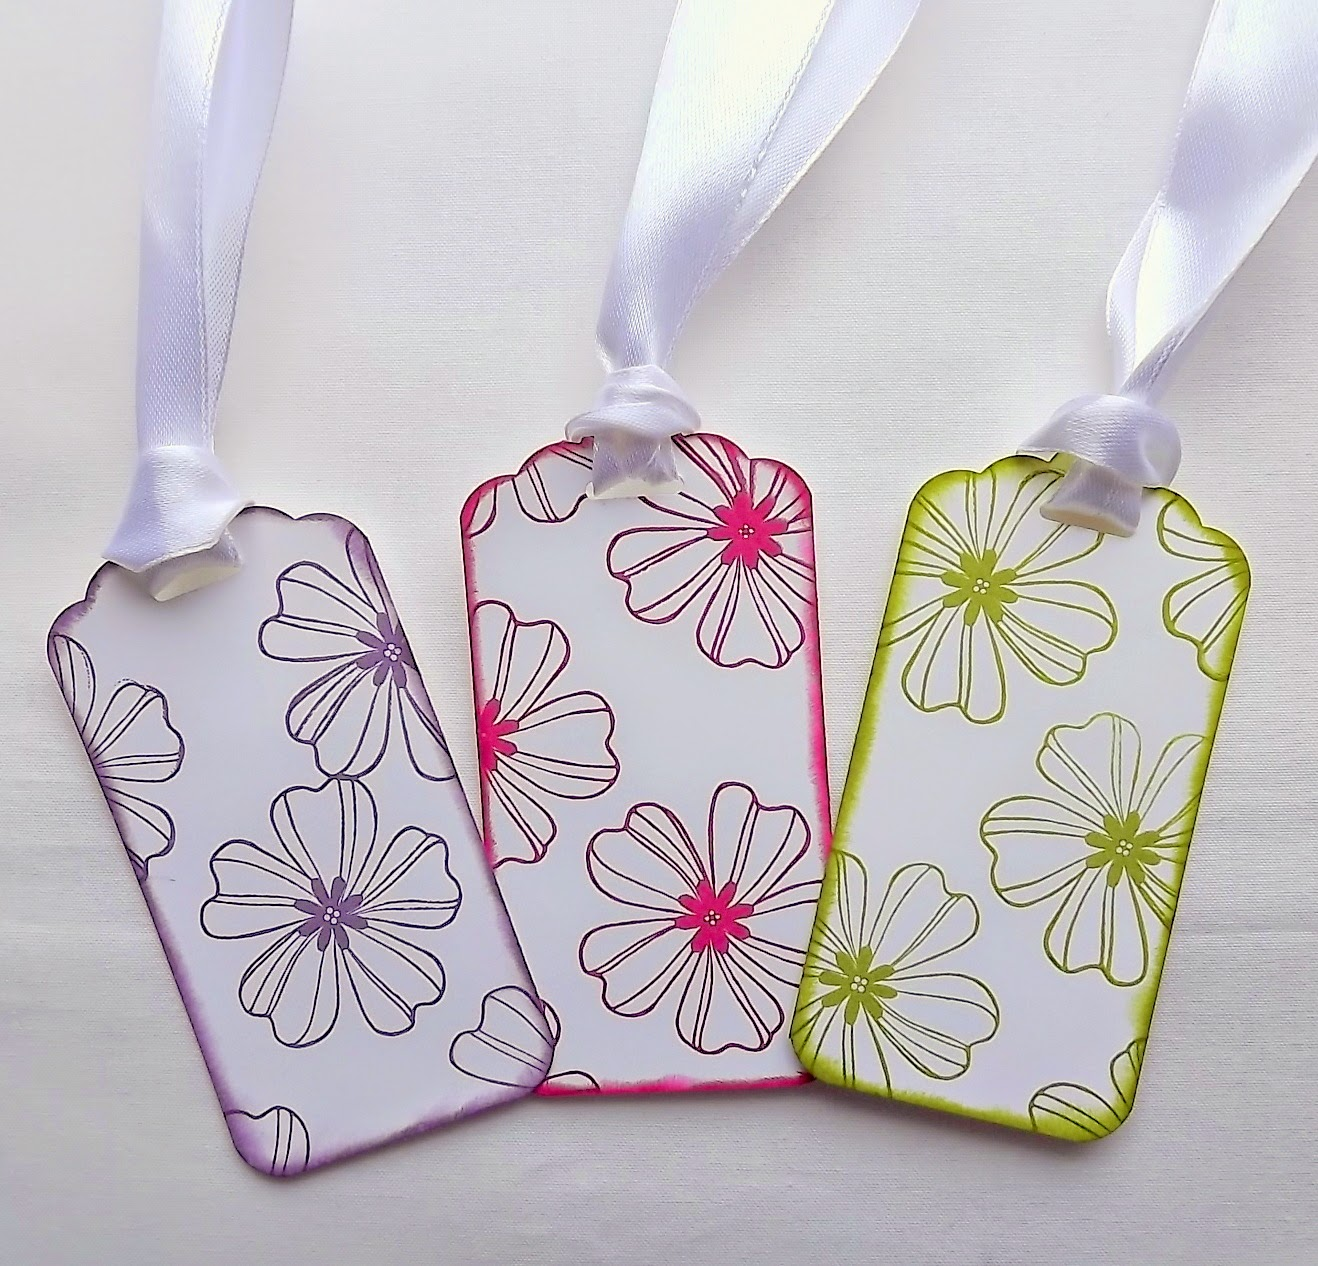 Stampin Up! Flower Shop and Scalloped Tag Topper